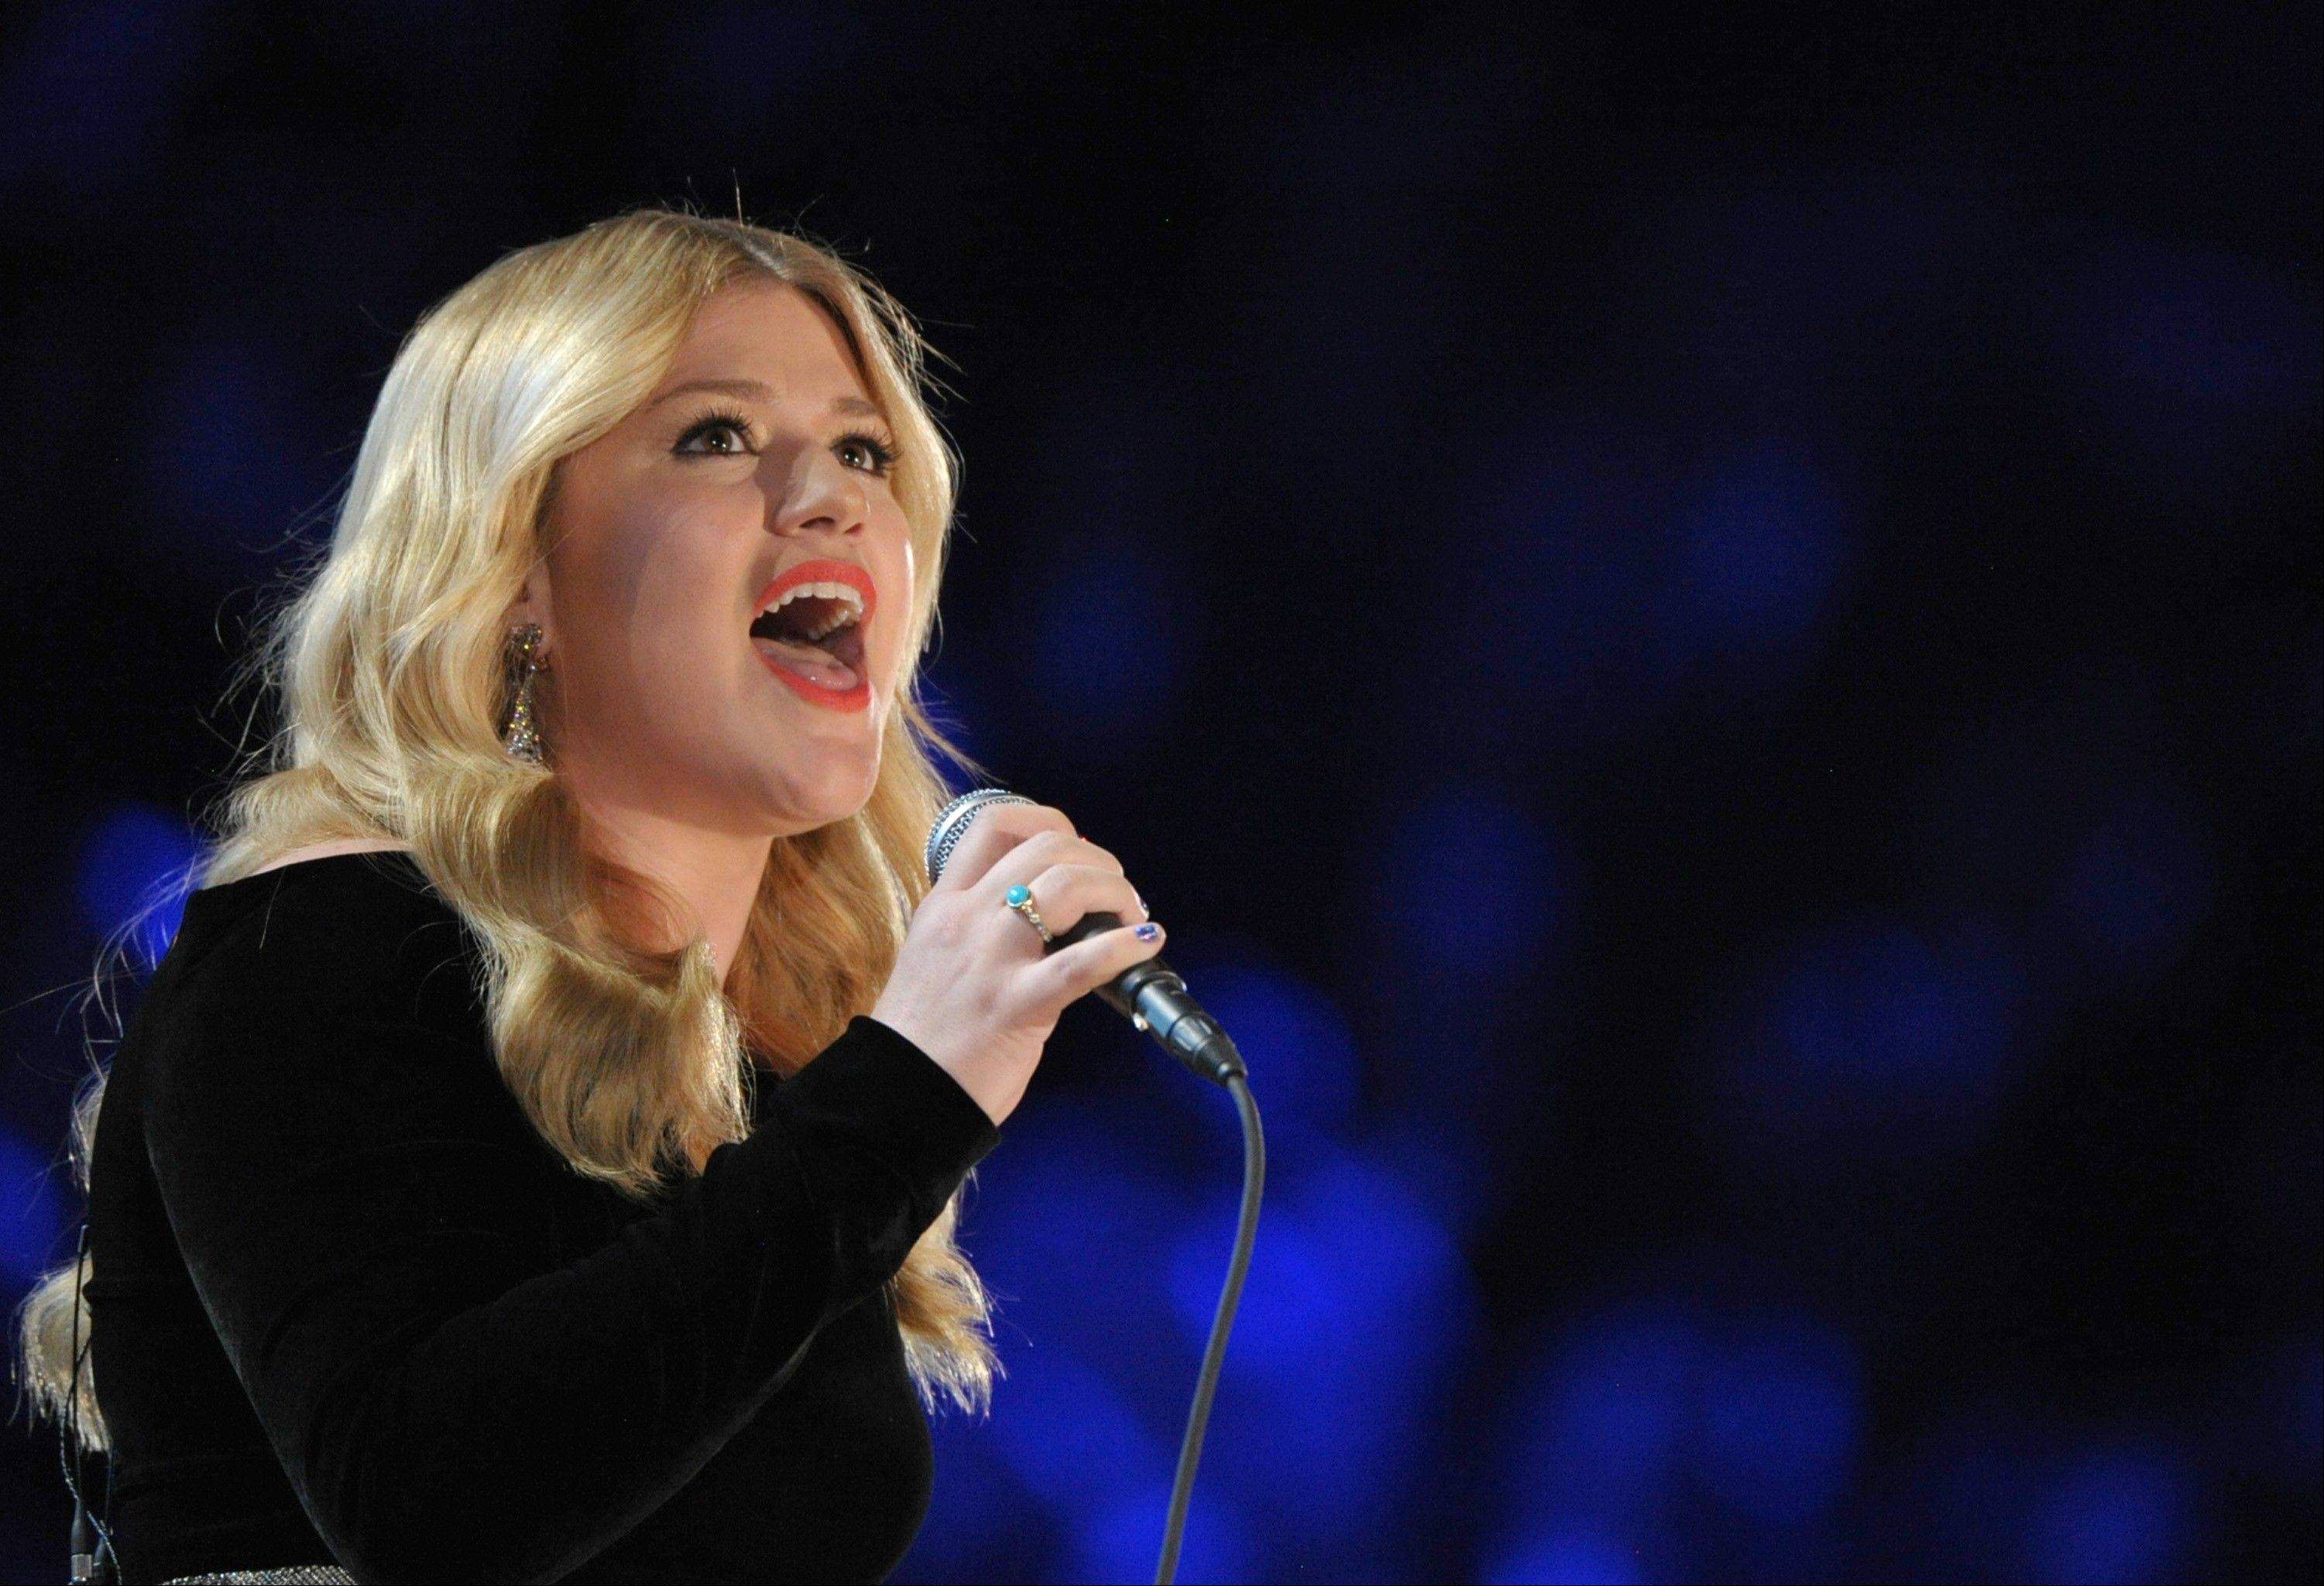 Kelly Clarkson says she�s expecting her first child. The 31-year-old singer said Tuesday, Nov. 19, 2013, on Twitter that she and husband Brandon Blackstock are expecting their first child together.